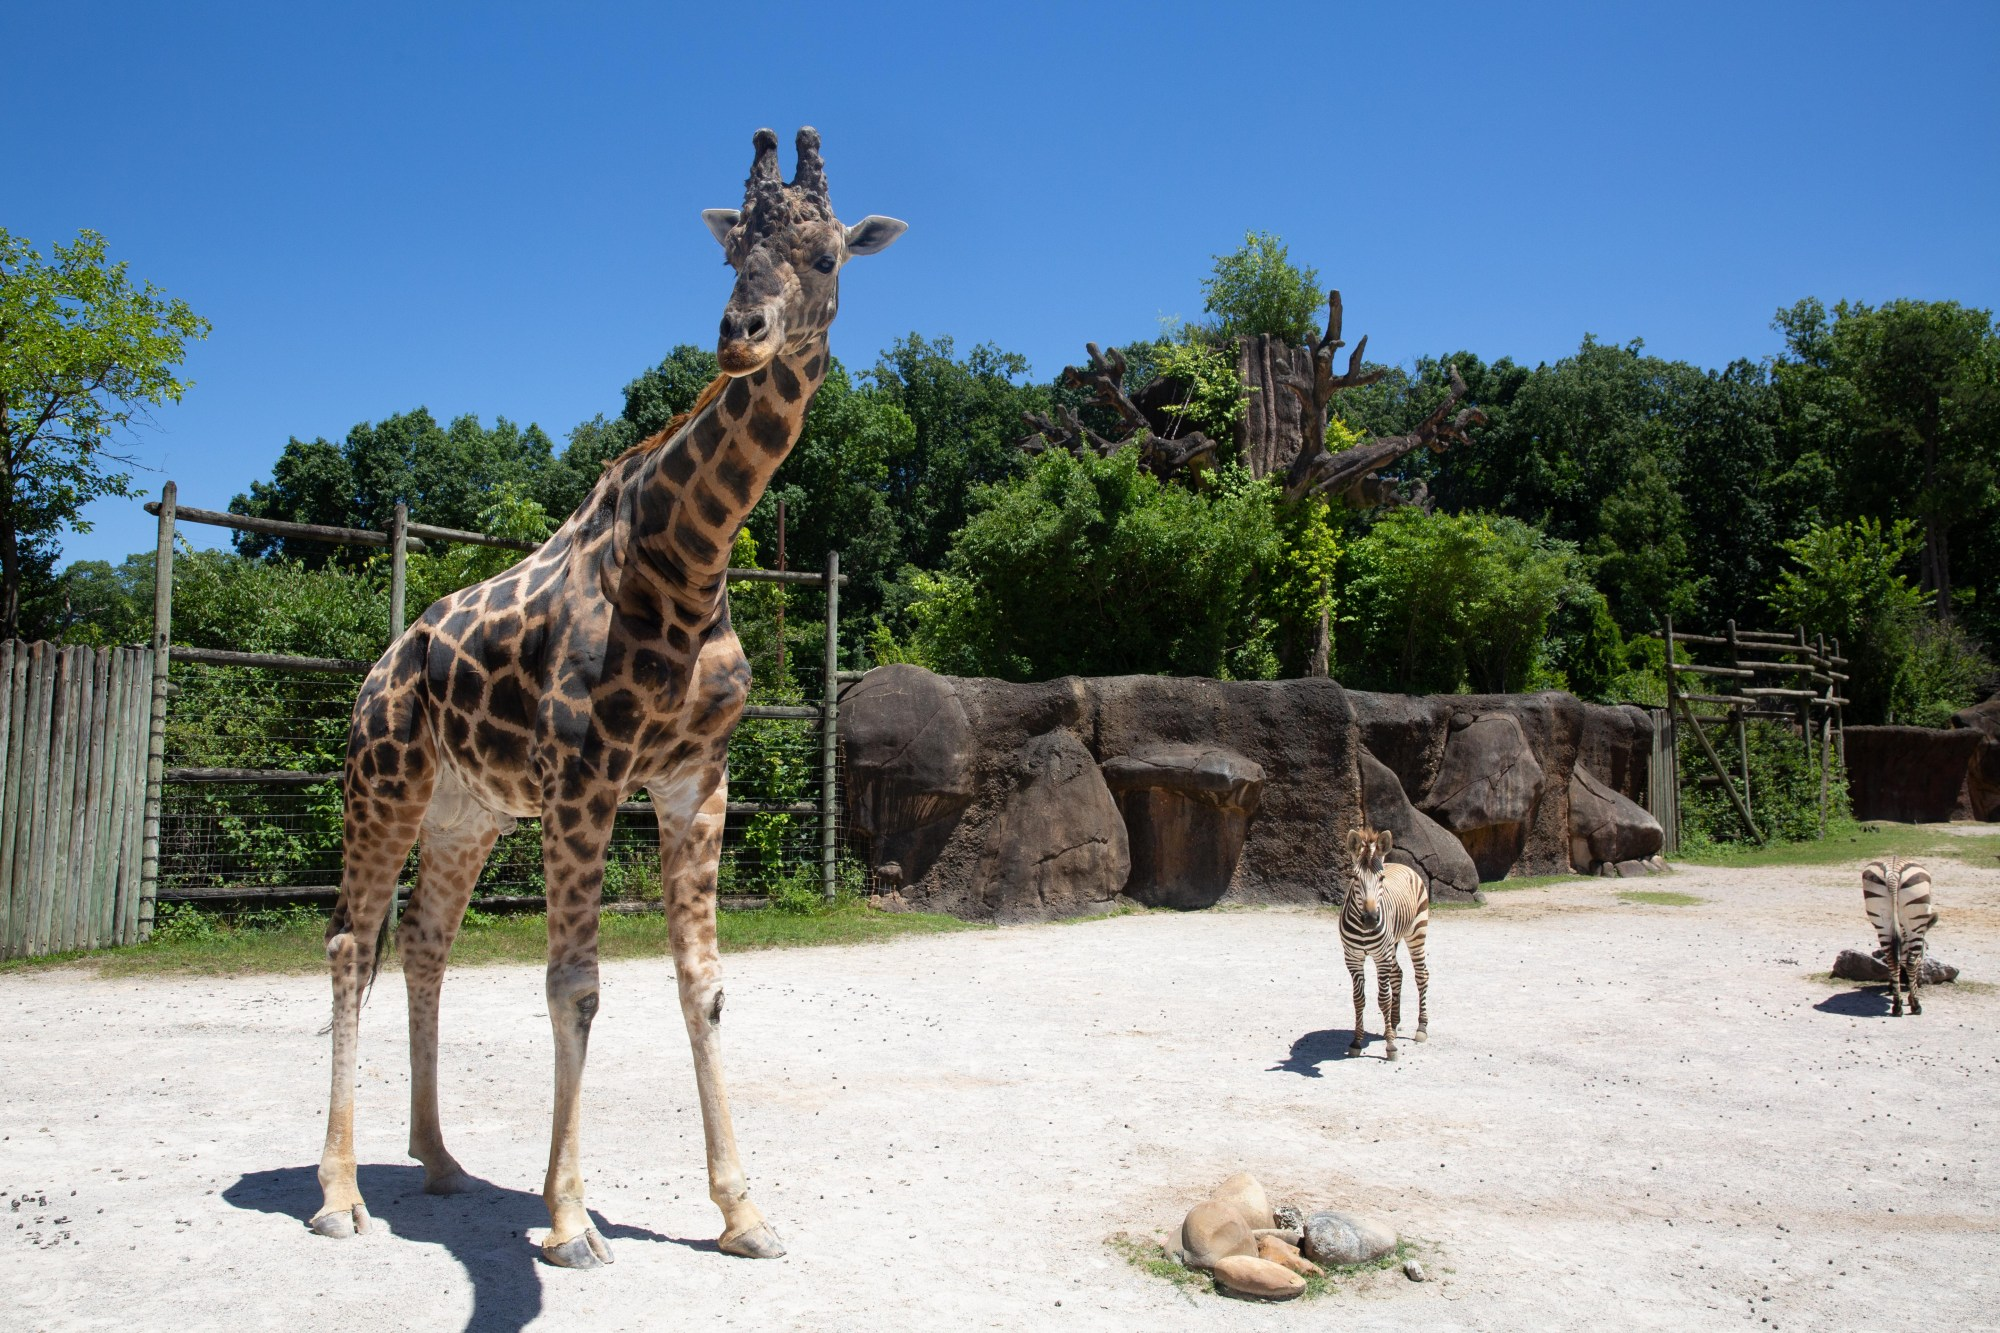 Zoo Knoxville's 16-year-old male giraffe, Jumbe. (Zoo Knoxville photo)